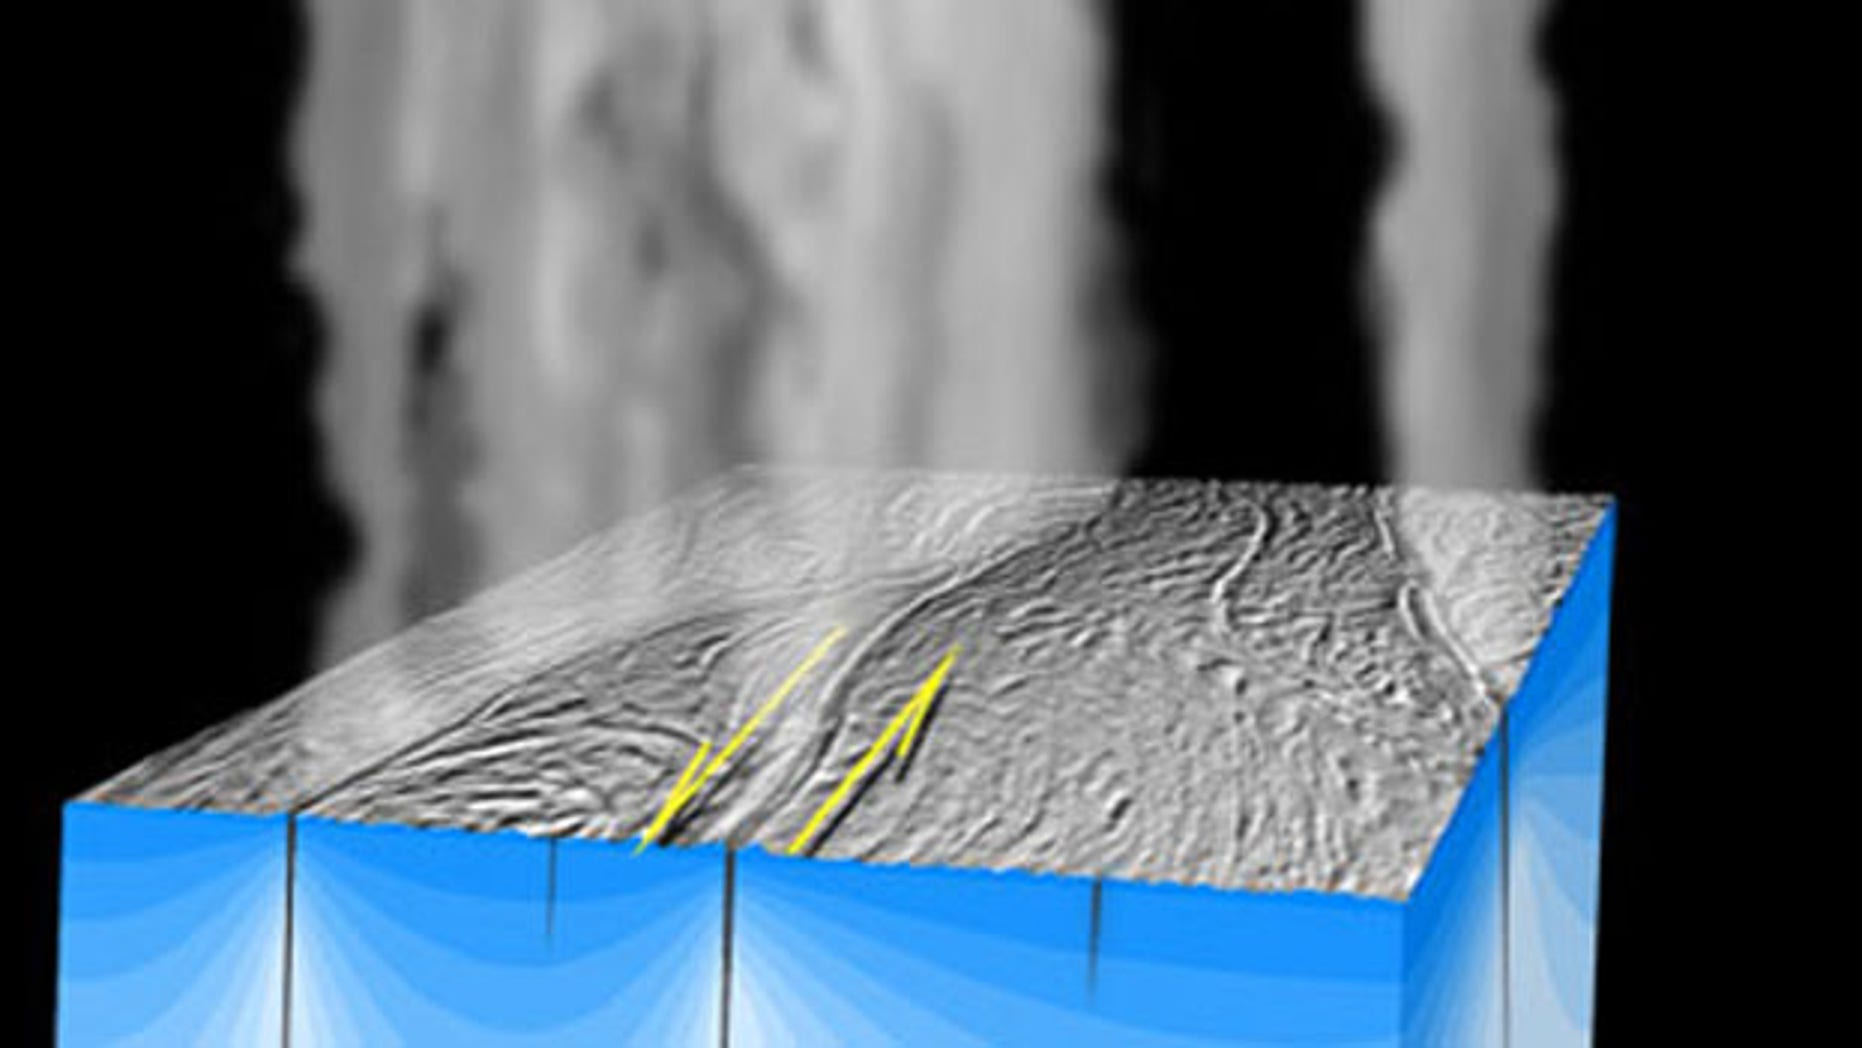 An artist's illustration showing plumes of water vapor and other gases escape at high velocity from the surface of Saturn's moon Enceladus. Credit: NASA/JPL